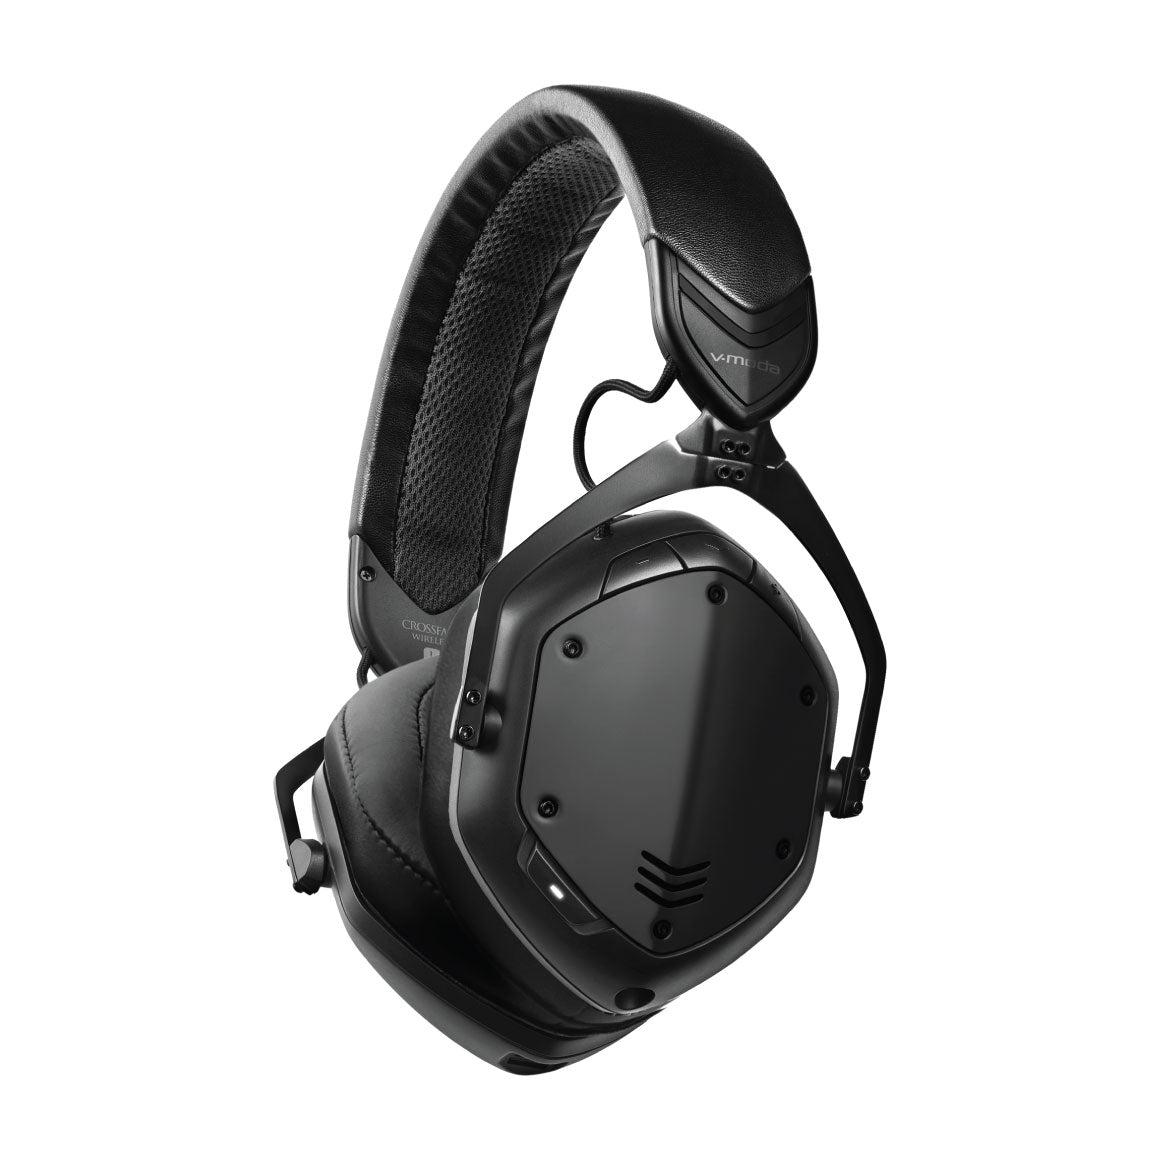 V-MODA - Crossfade 2 Wirelessvs competitors